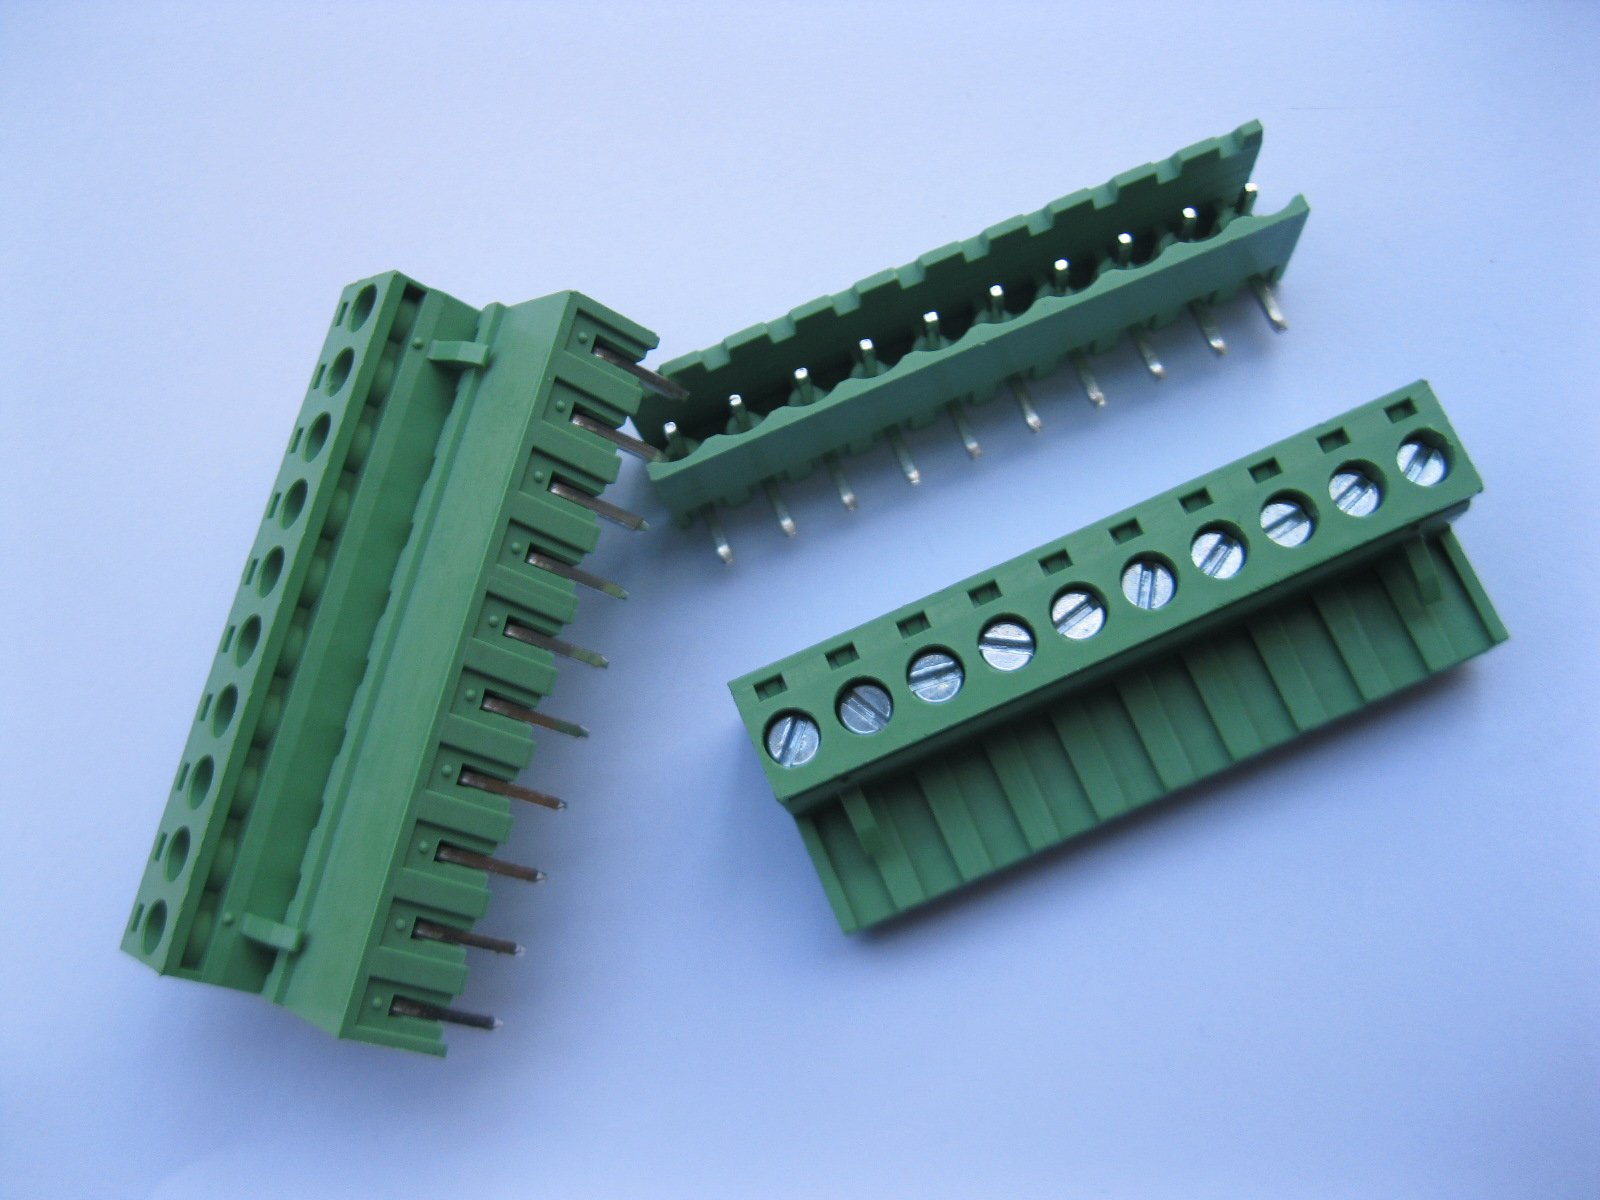 120 Pcs Pitch 5.08mm Angle 10way/pin Screw Terminal Block Connector w/ Angle-pin Green Color Pluggable Type Skywalking